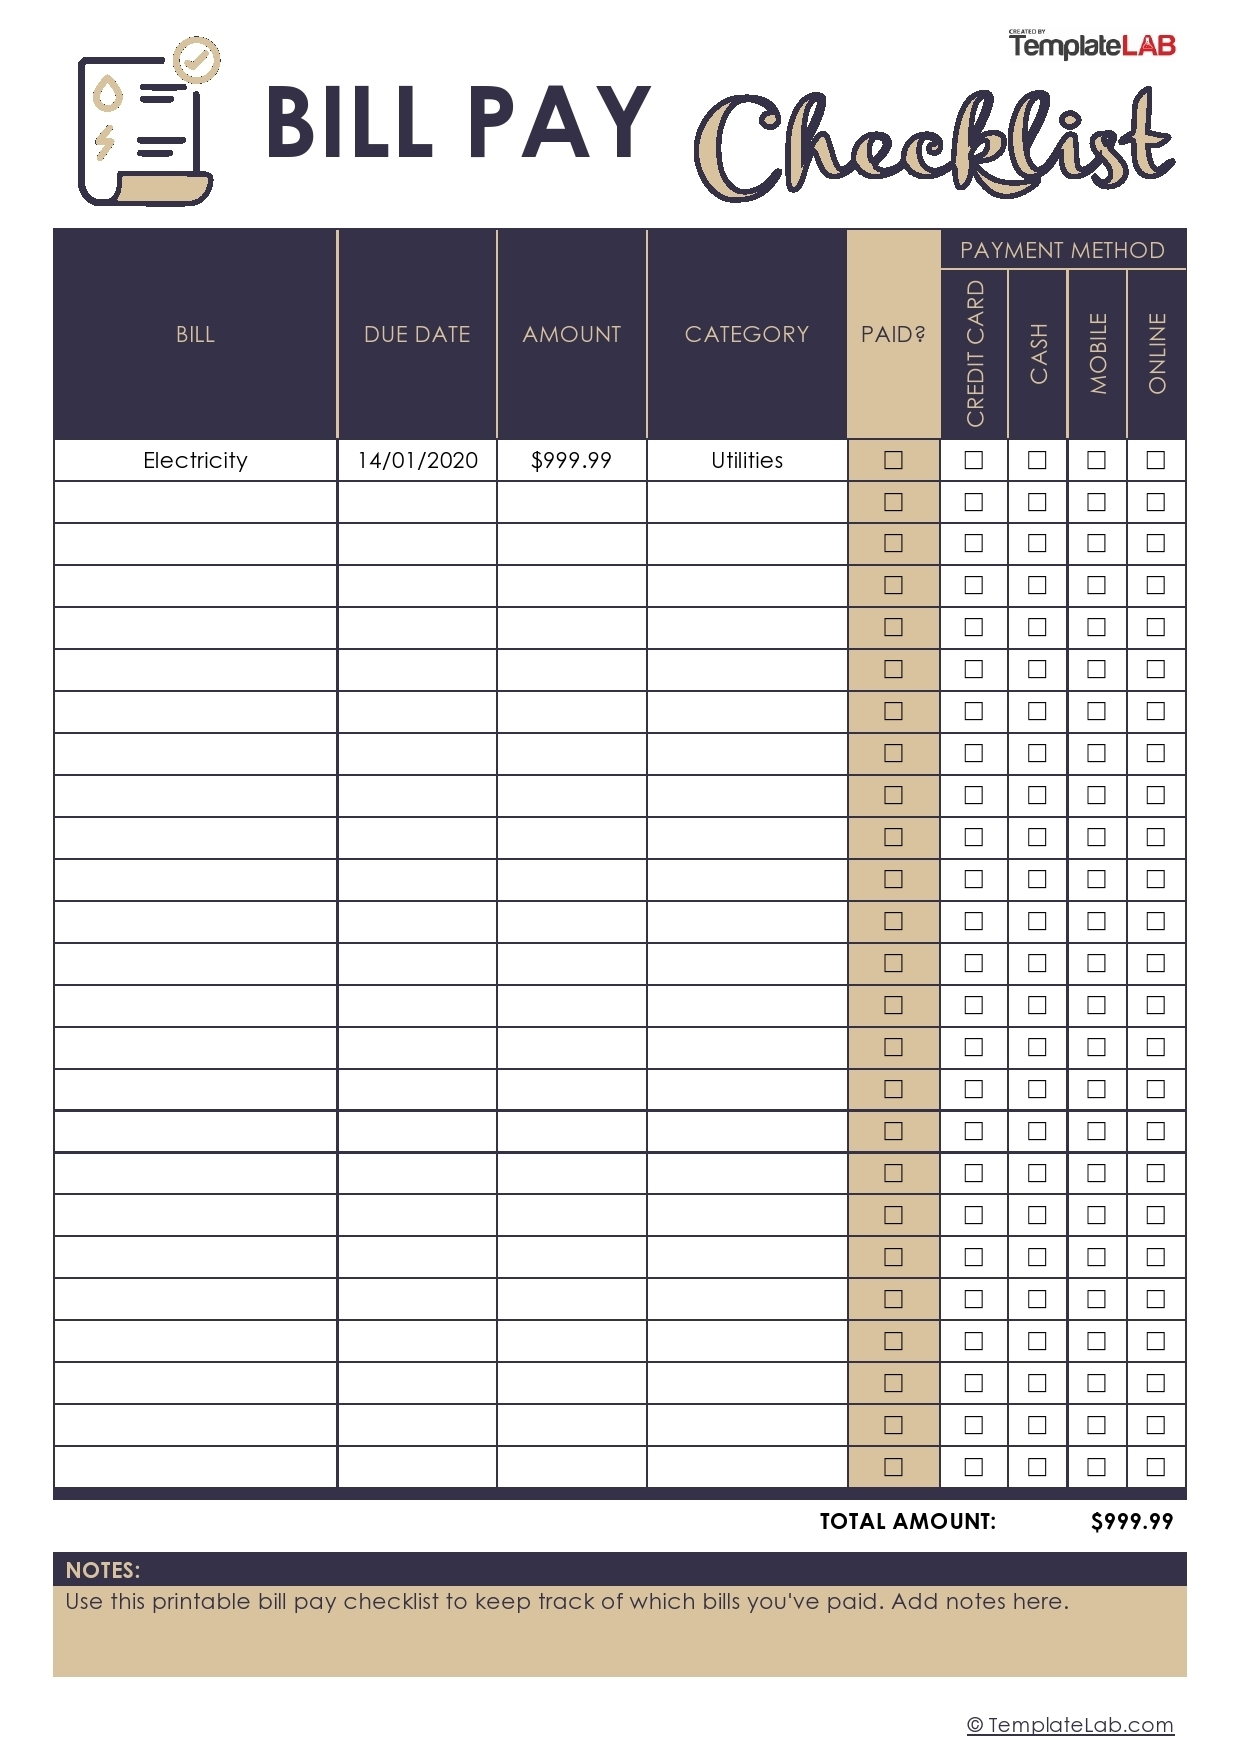 33 Free Bill Pay Checklists & Bill Calendars (Pdf, Word & Excel) within 30 Day Blank Calendar For Bills Due